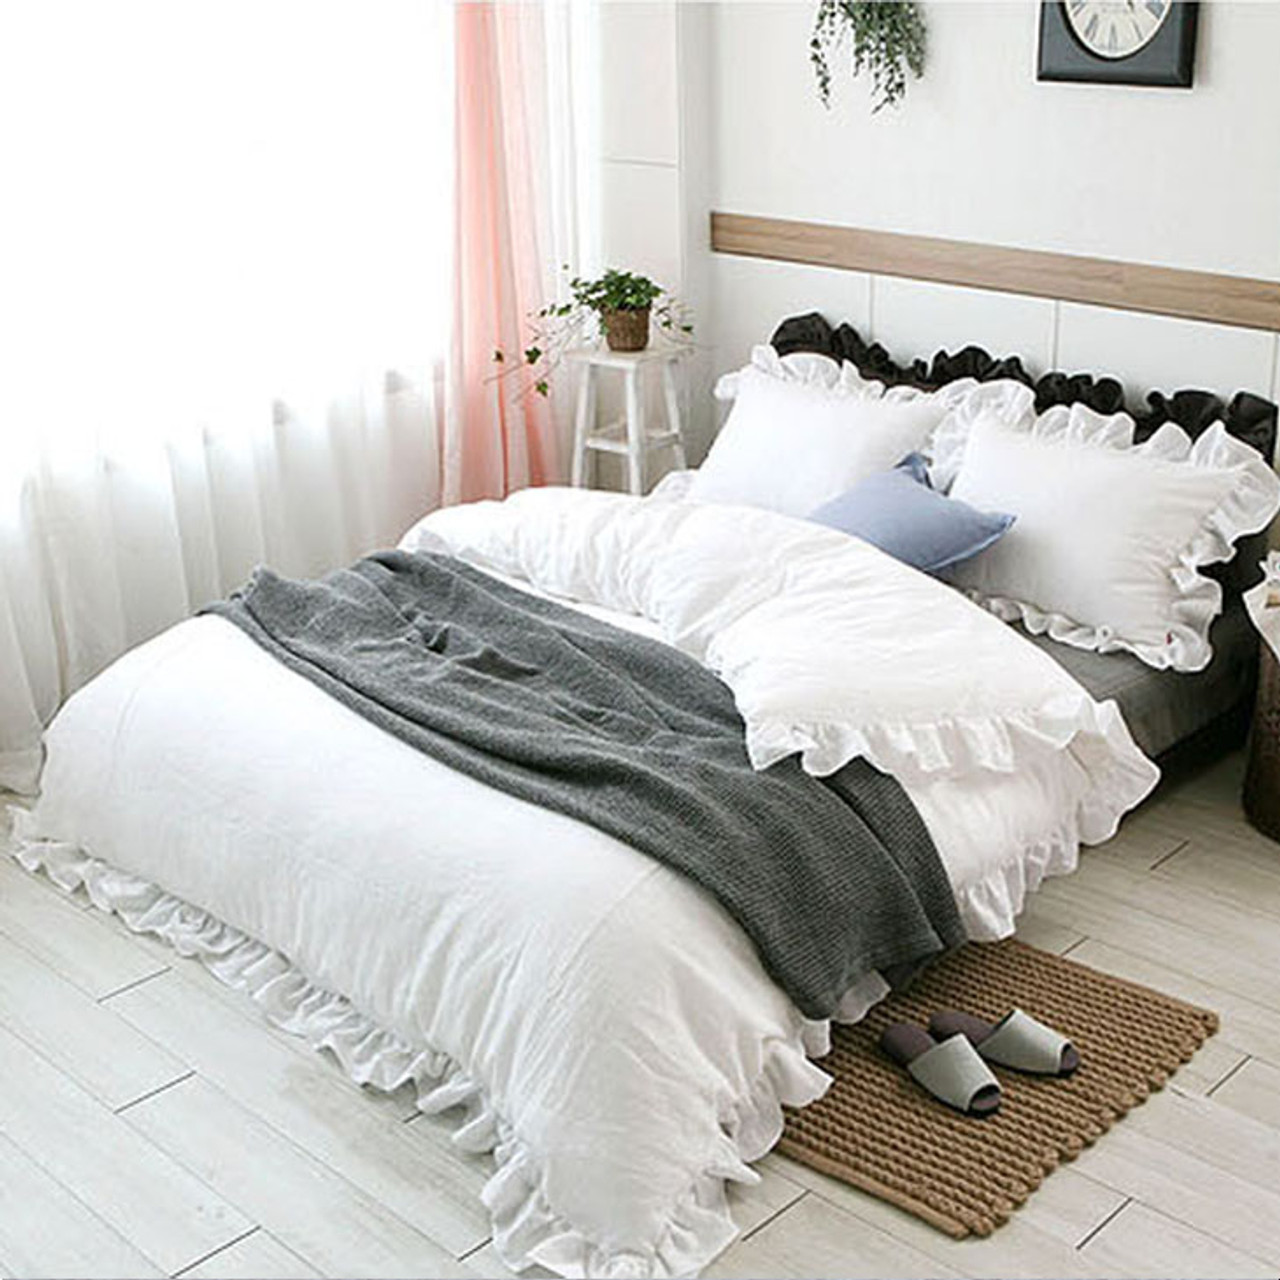 urban constrain outfitters cover duvet waterfall hei fit b ruffle white shop xlarge qlt